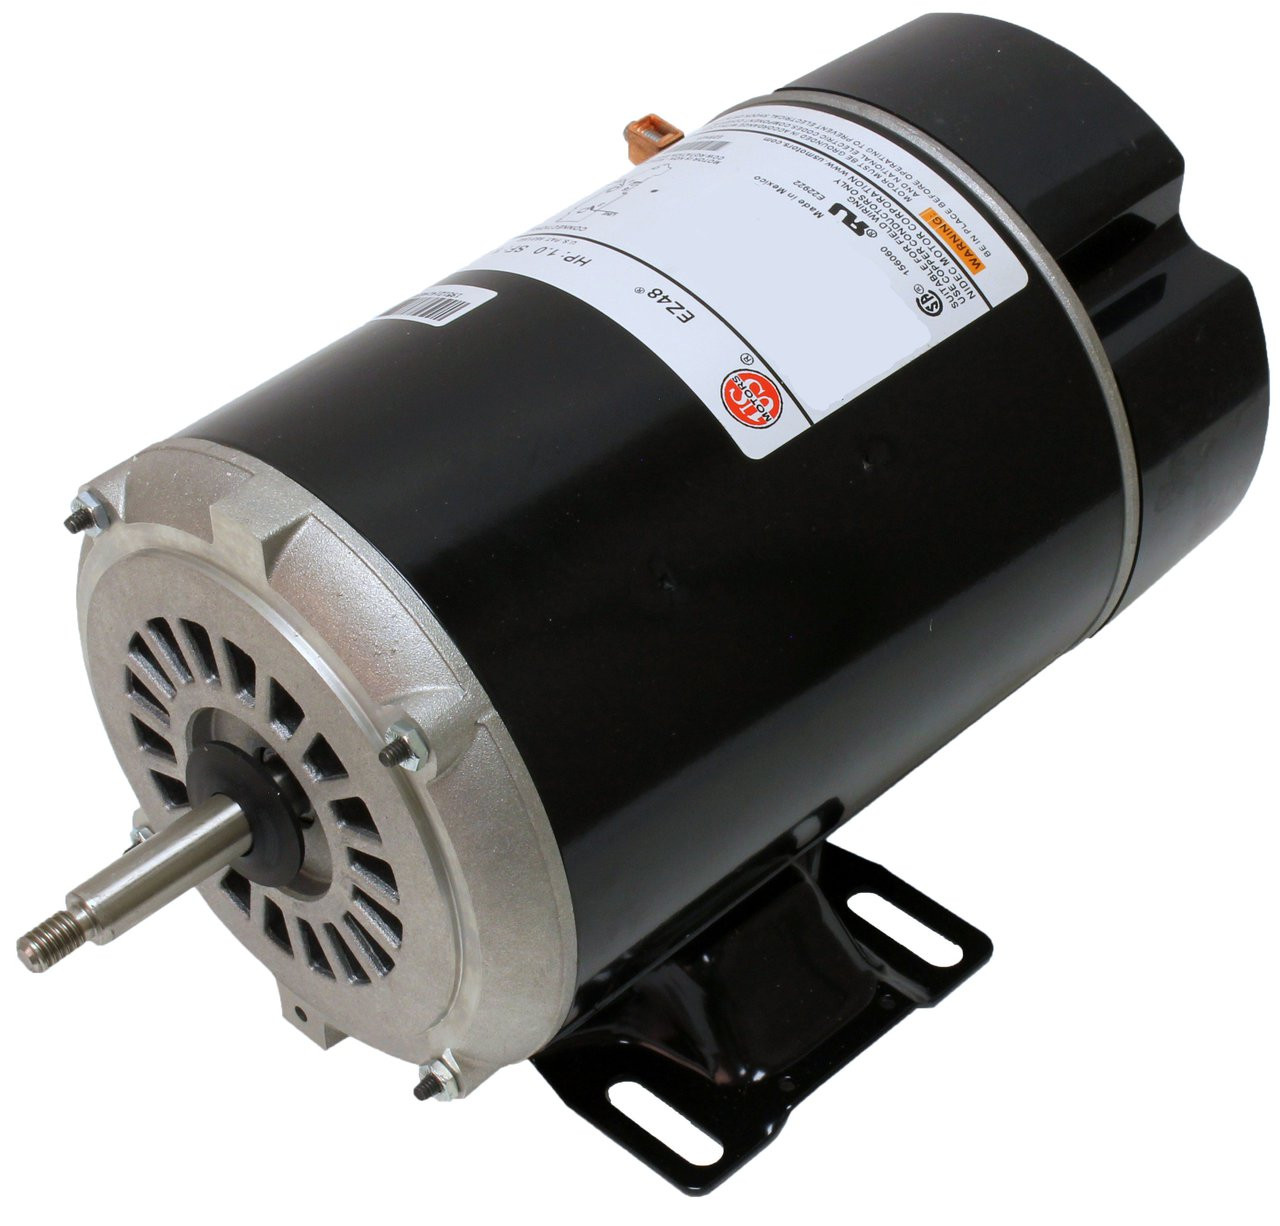 EZBN25__39141.1435584884.1280.1280?c\=2 hayward max flo wiring diagram 115v hayward pool motors 1 5 hp Hayward Pro Max at fashall.co